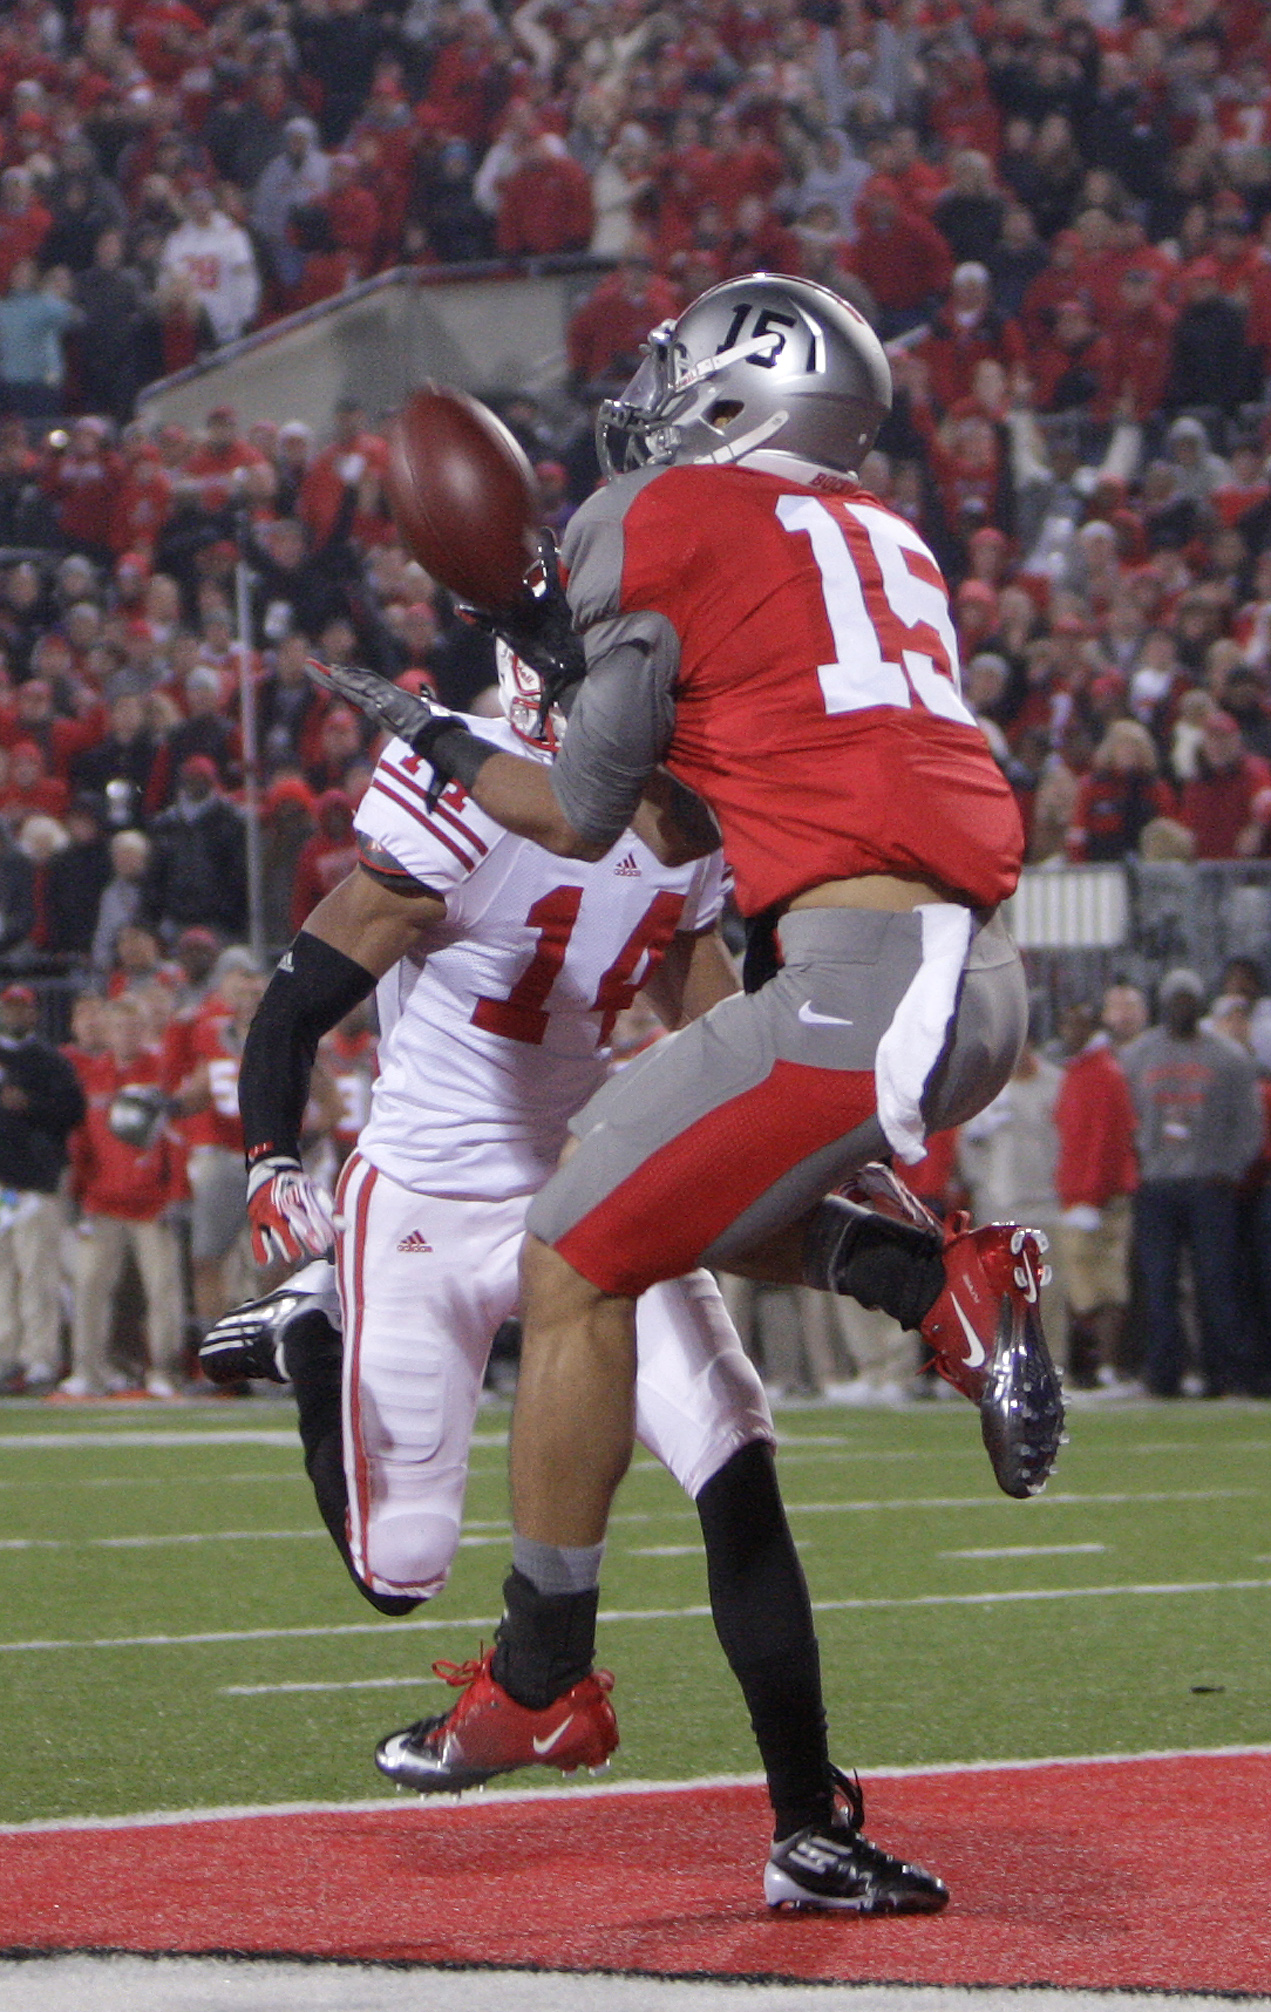 Win over Wisconsin bolsters the Buckeyes - The Blade